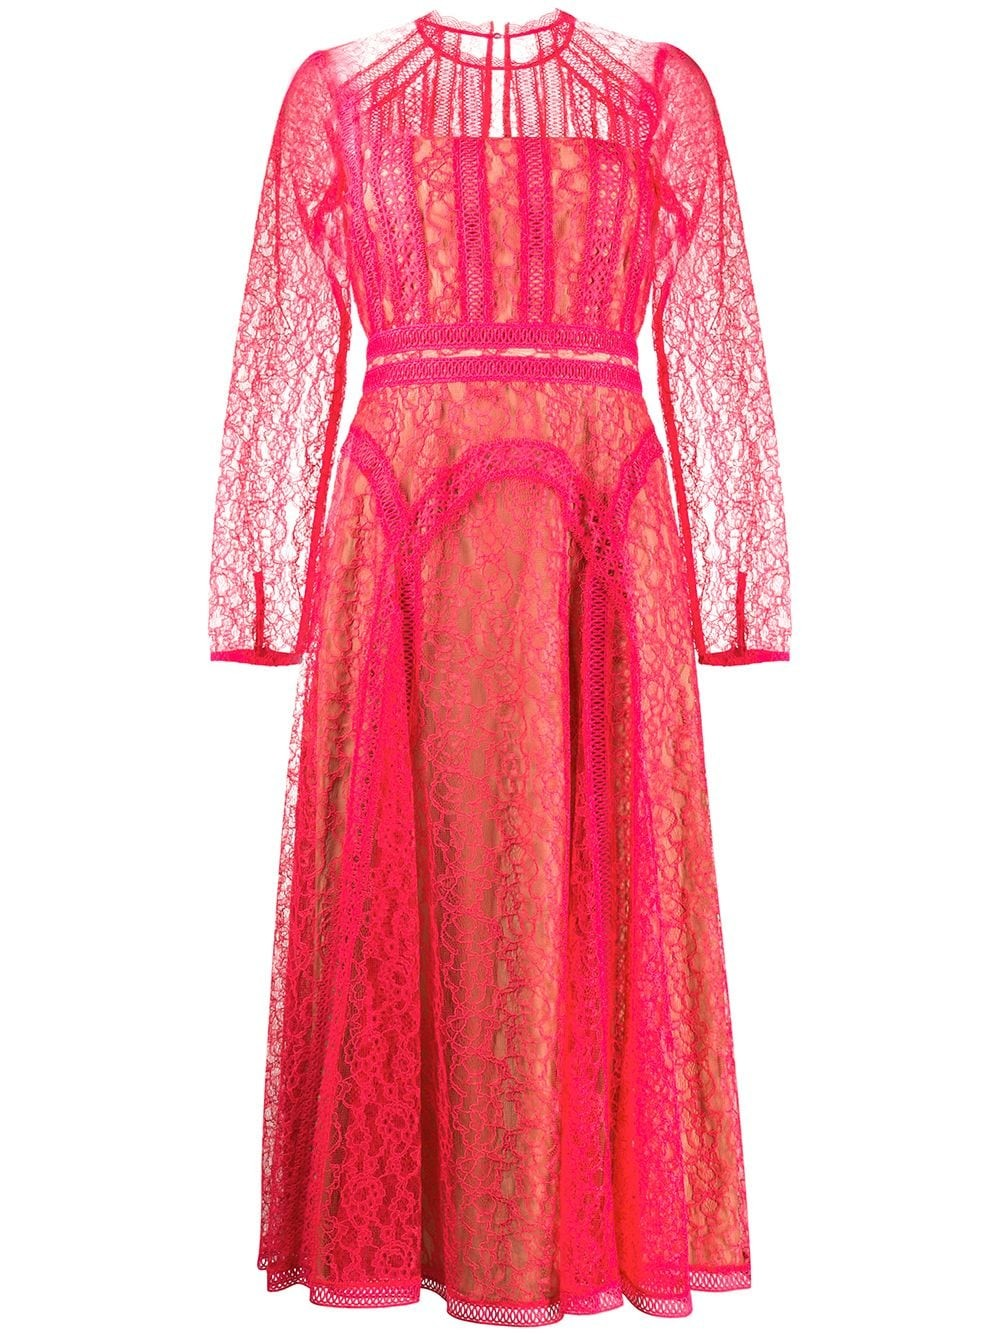 HOT PINK LACE PANEL MINI DRESS